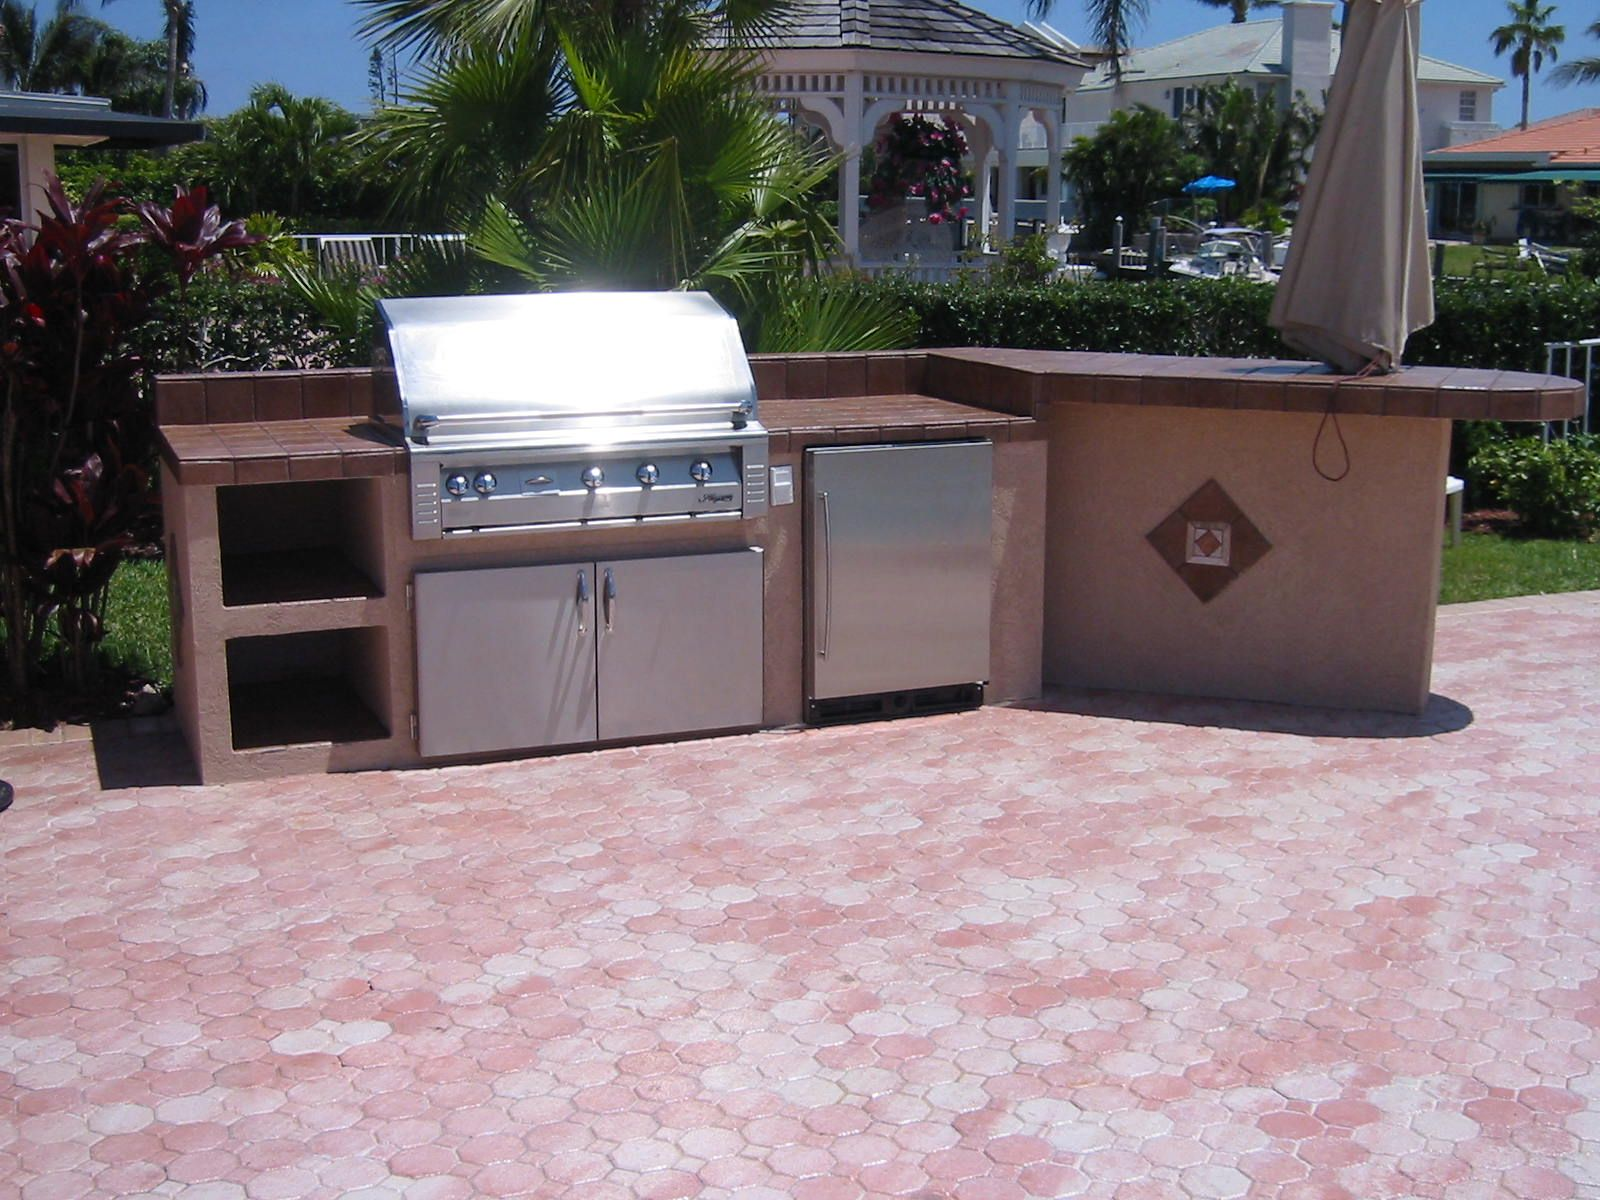 Barbeque picnic built in outdoor grills more outdoor for Built in barbecue grill ideas